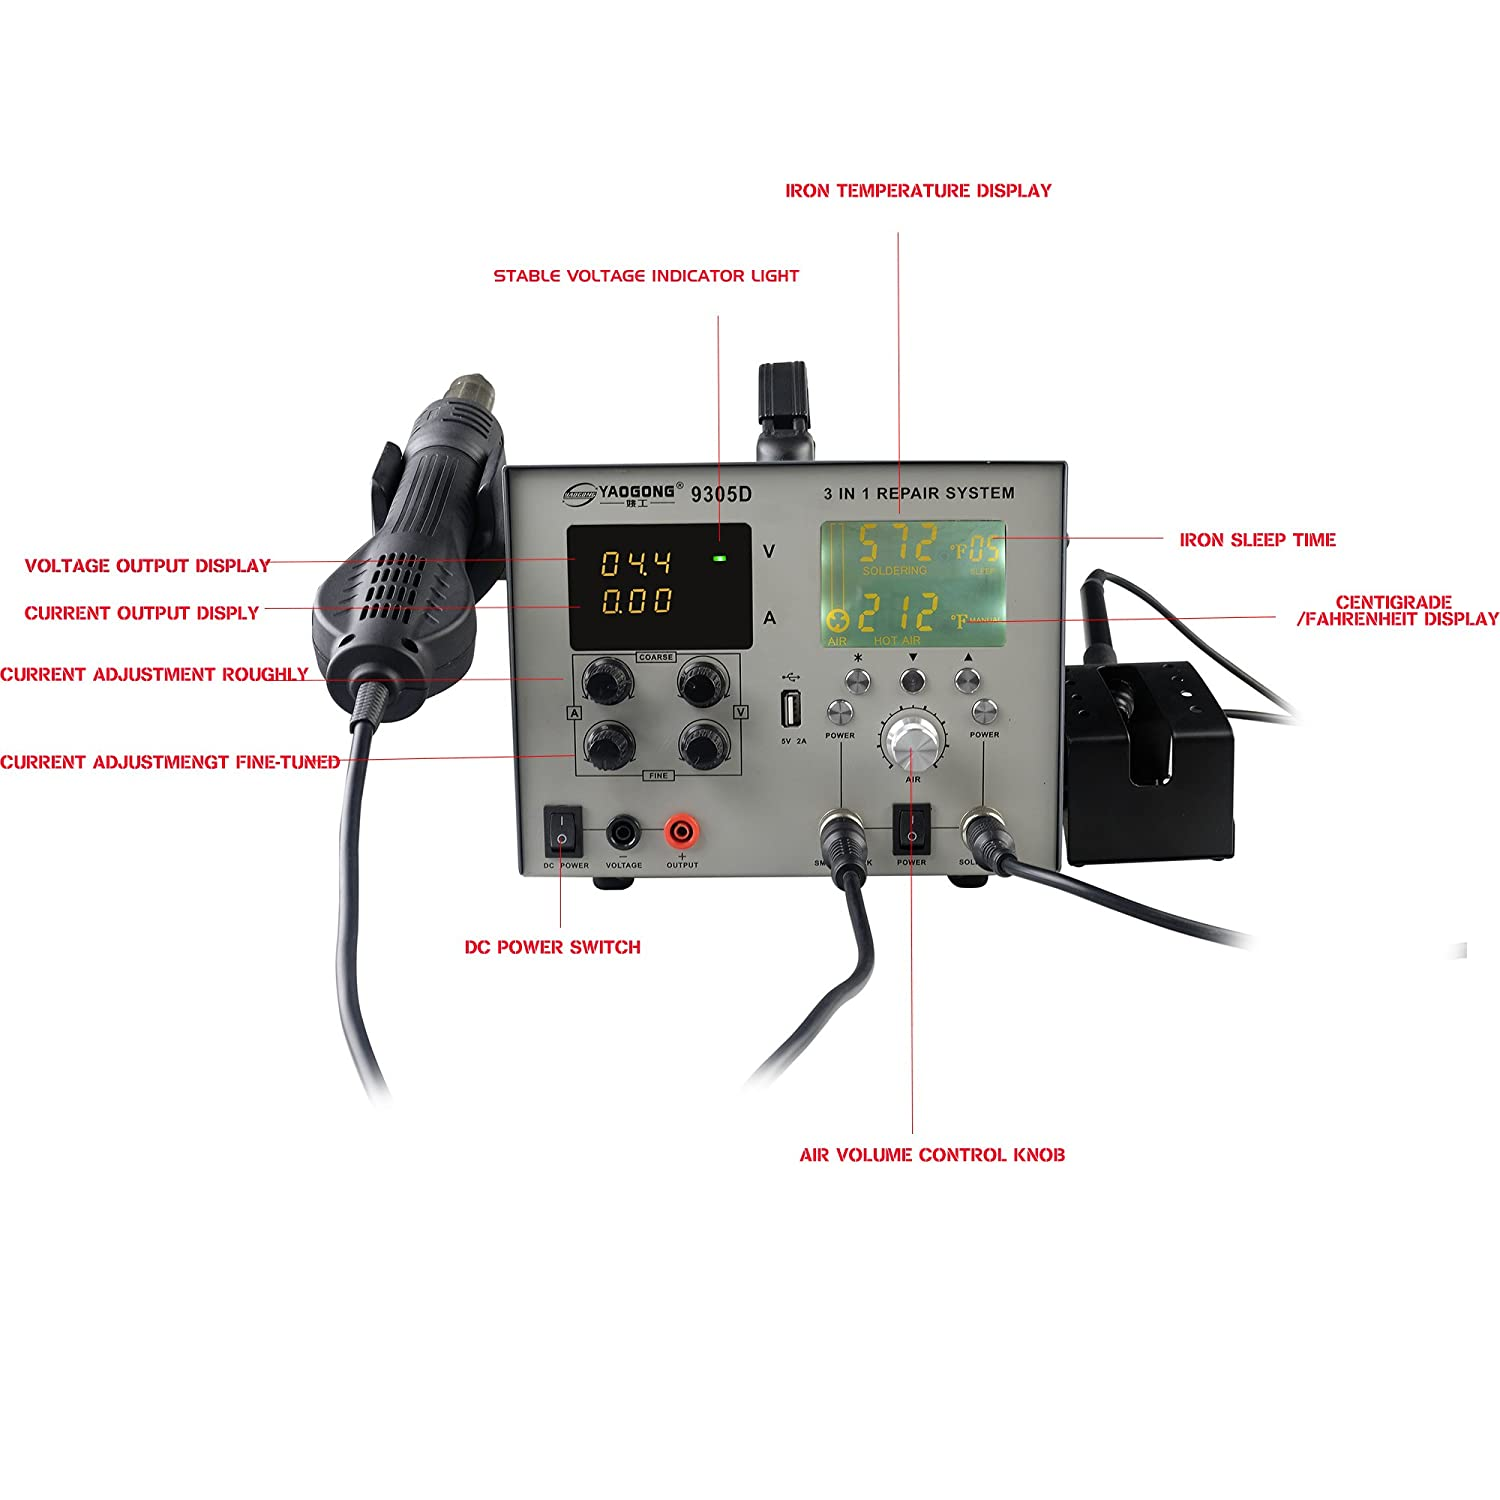 Yaogong 9305d Brushless 4 In 1 Digital Lcd Smd Rework Station Power Fahrenheit Wiring Diagram Supply 30v 5a With Usb Automatic Soldering Iron And Air Gunauto Manual Settings